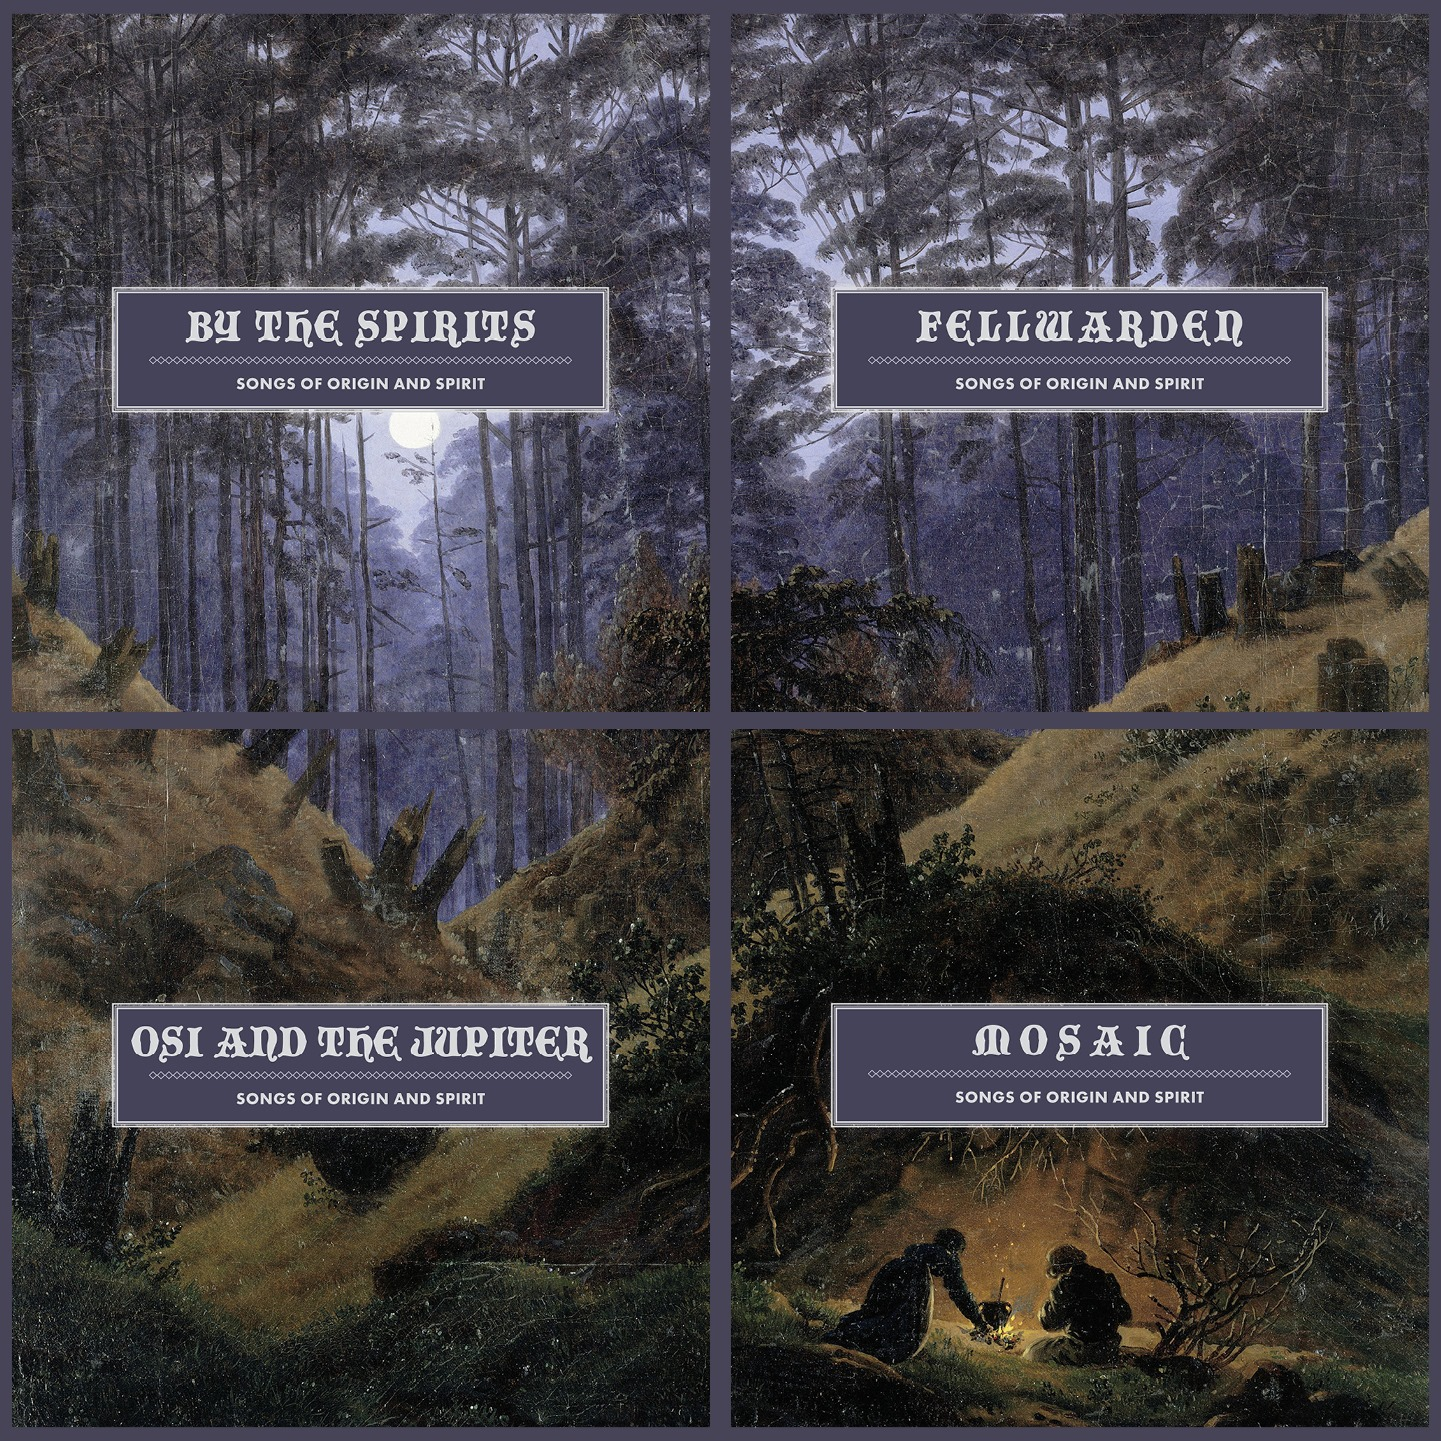 BY THE SPIRITS, OSI AND THE JUPITER, MOSAIC et FELLWARDEN : l'album collaboratif Songs Of Origin And Spirit en écoute intégrale